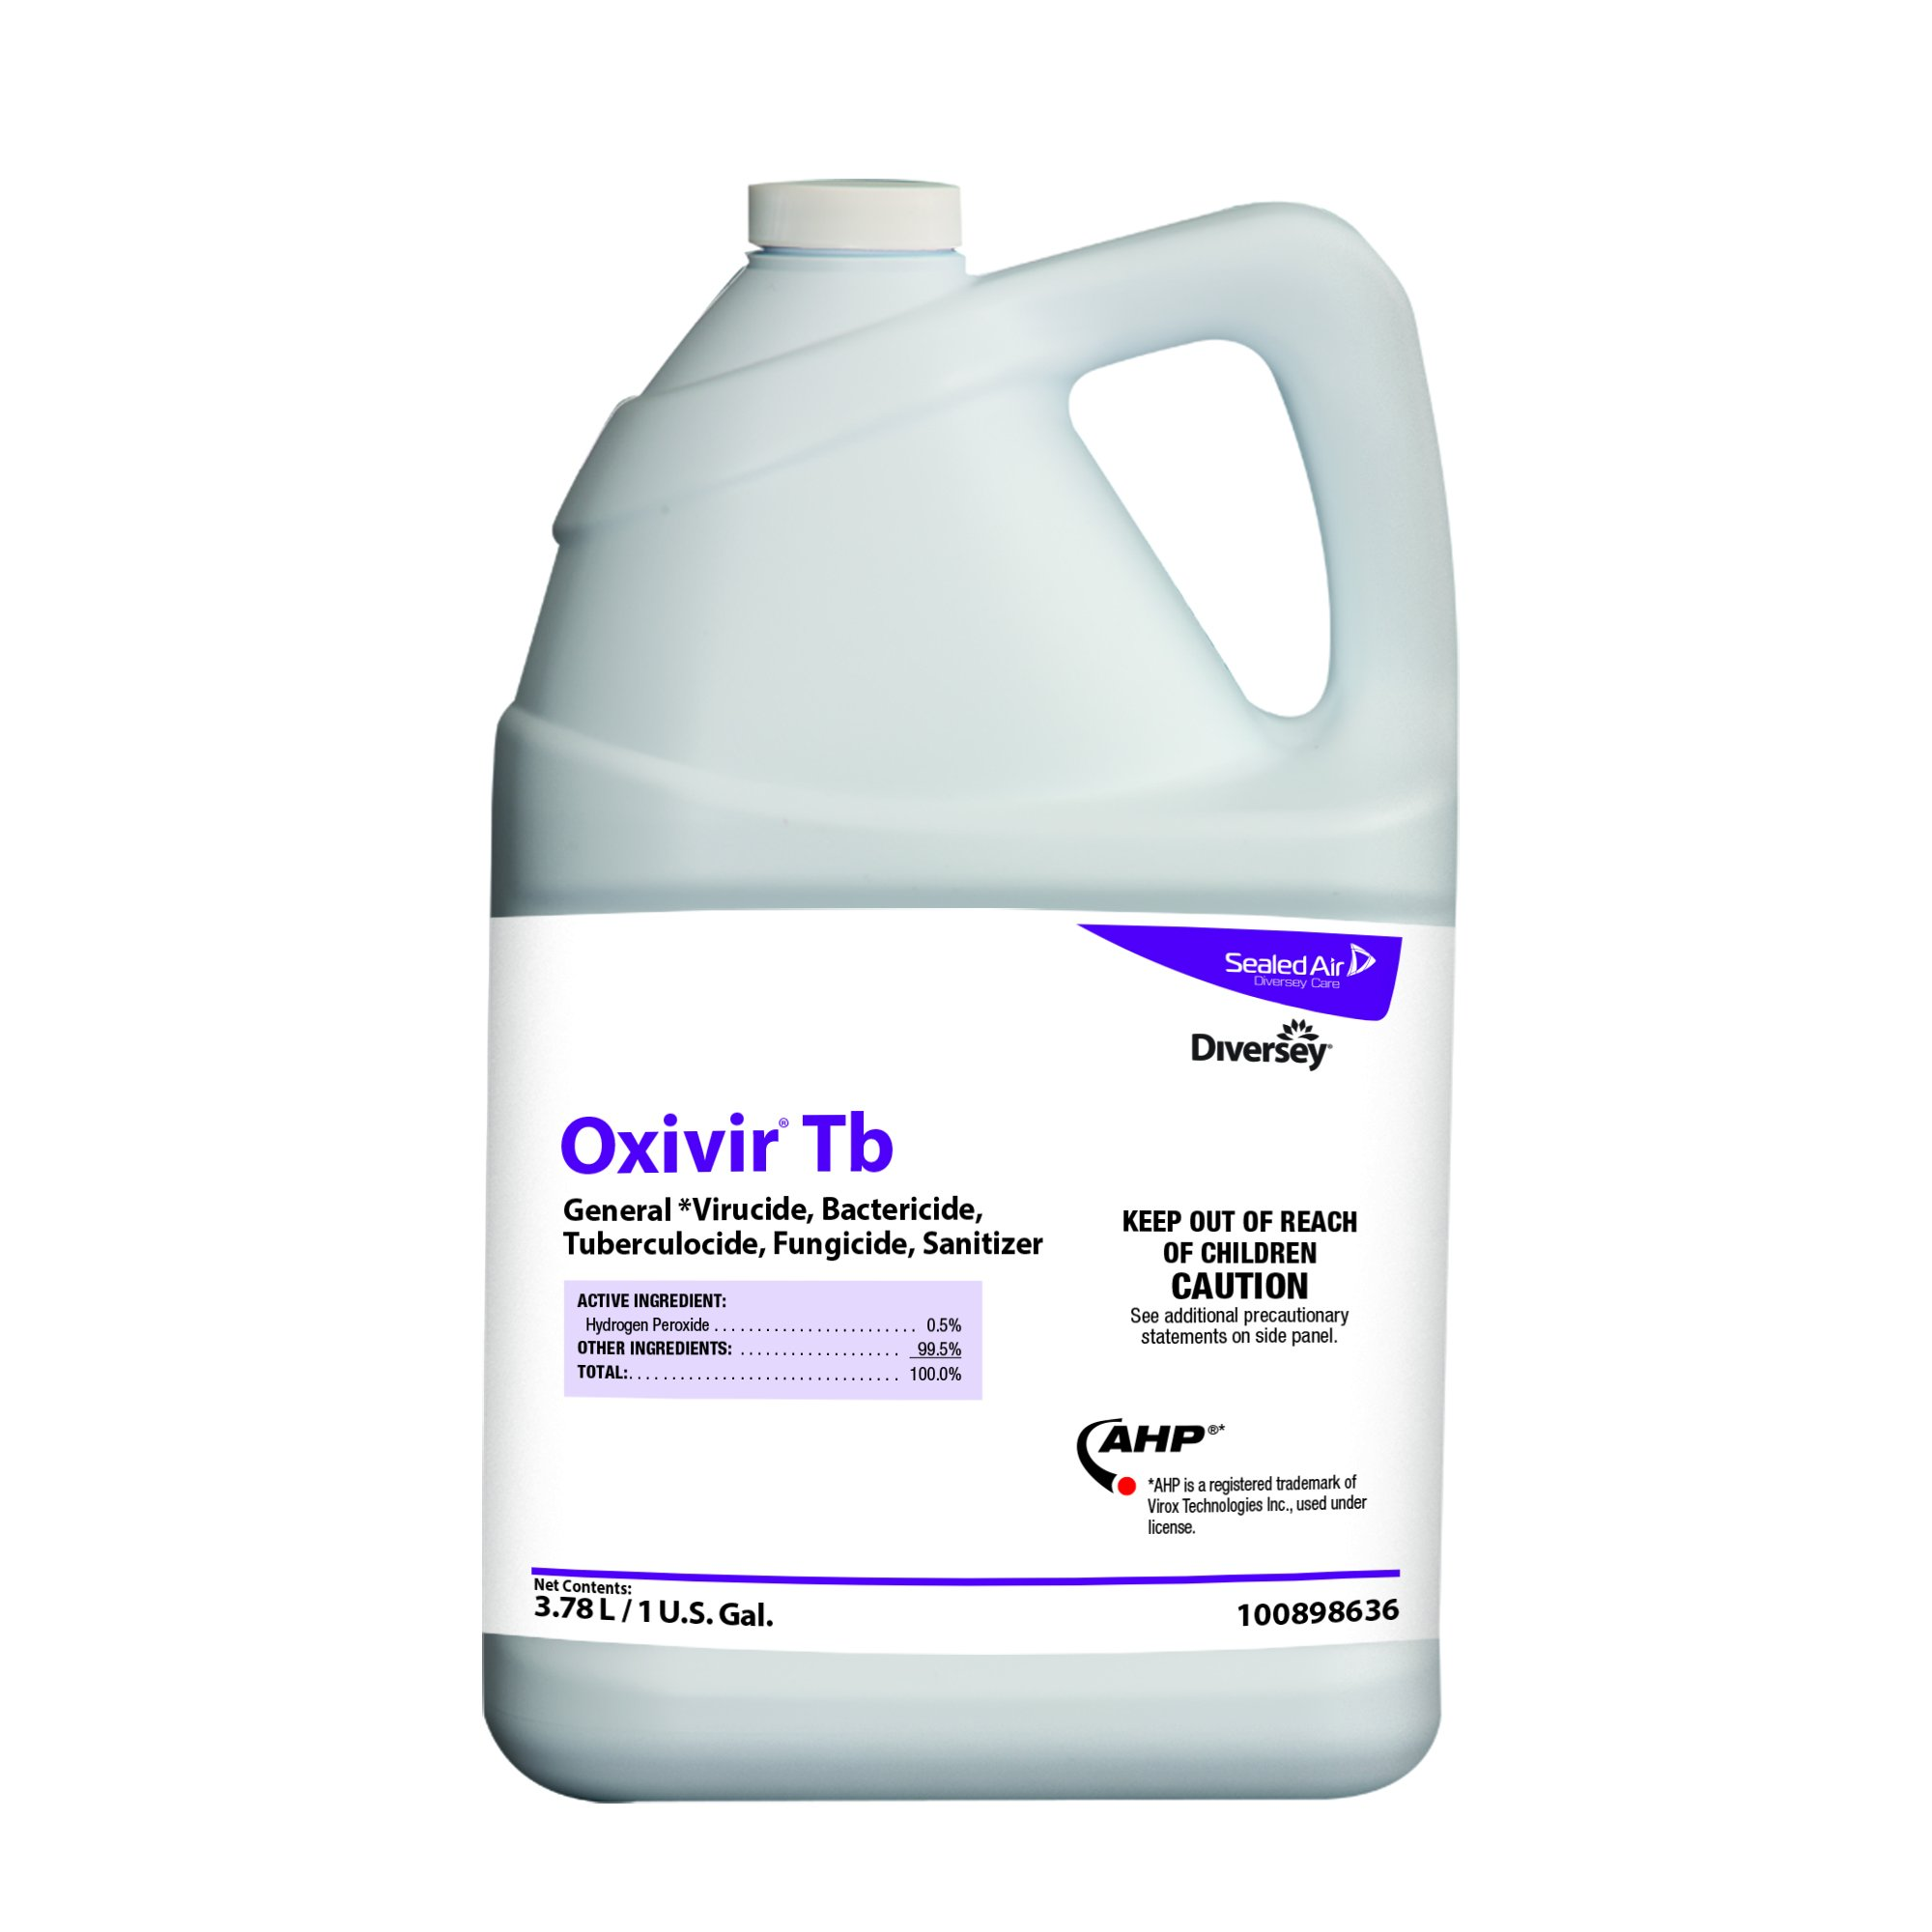 Diversey Oxivir Tb - One-Step Disinfectant Cleaner with AHP, 1 Gallon Container (4 Pack)